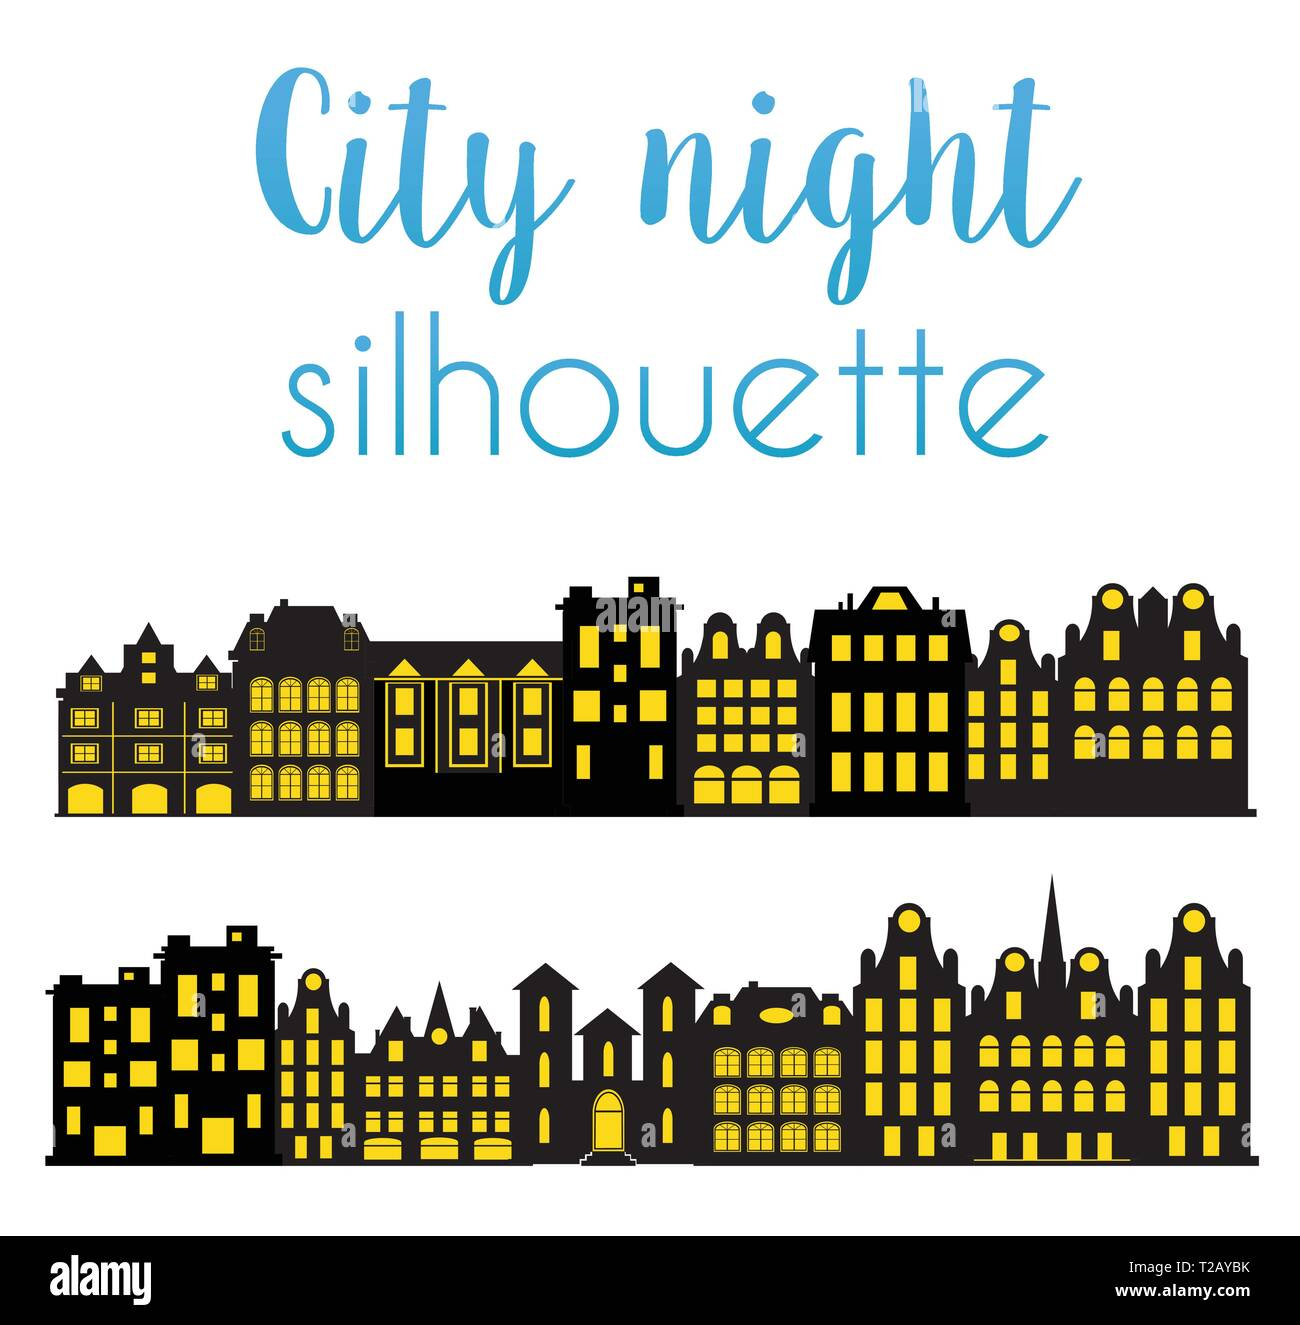 Night silhouette of the city with houses and windows. - Stock Image